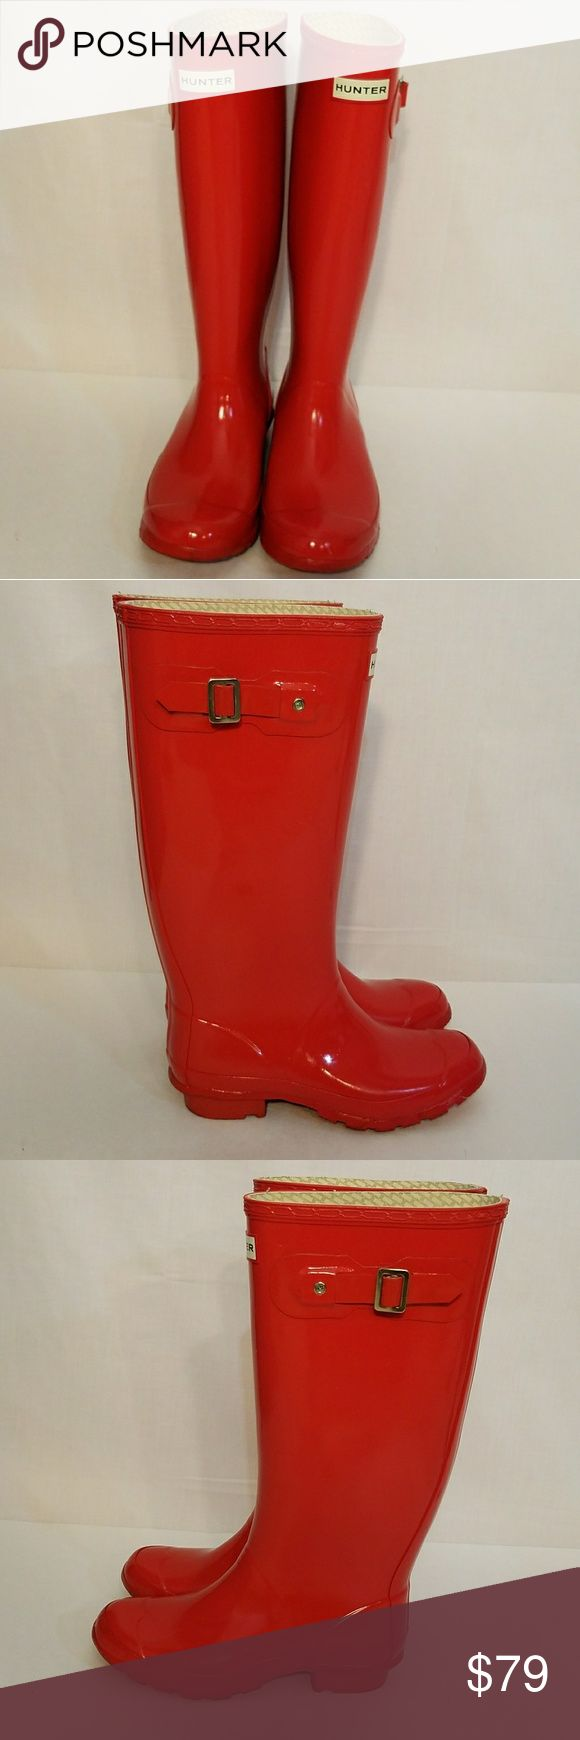 Hunter Huntress Red Gloss Wellies Rain Boots This is a pair of Hunter Huntress Red Gloss Wellies Rain Boots. Minimal signs of wear to uppers - a couple of light marks on boots, side straps cracked, heel/outsole wear, see photos wb5 Hunter Boots Shoes Winter & Rain Boots